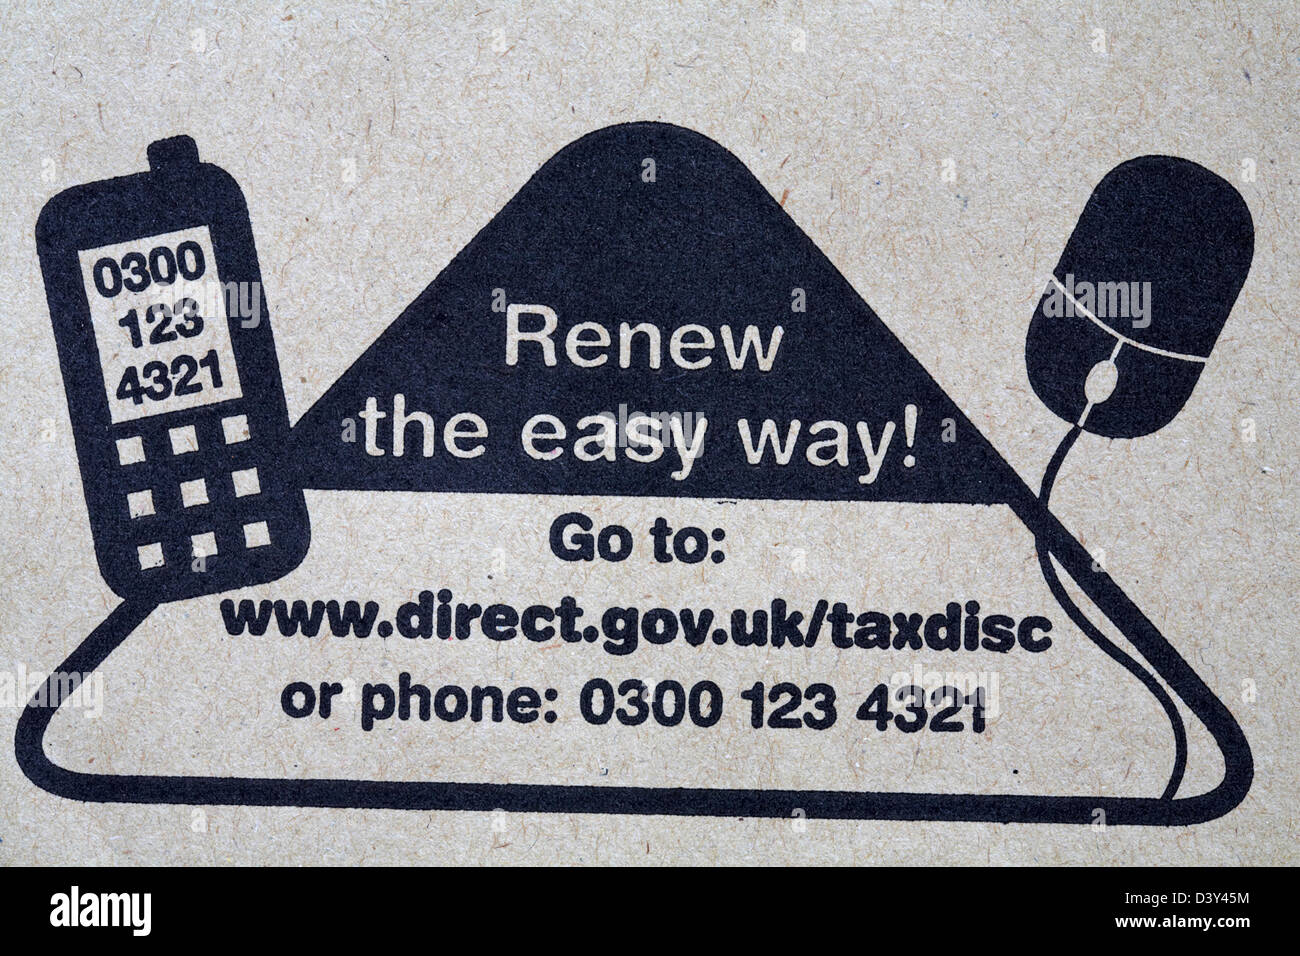 renew the easy way - internet or phone stamped on envelope for tax renewal reminder from Driver and Vehicle Licensing - Stock Image